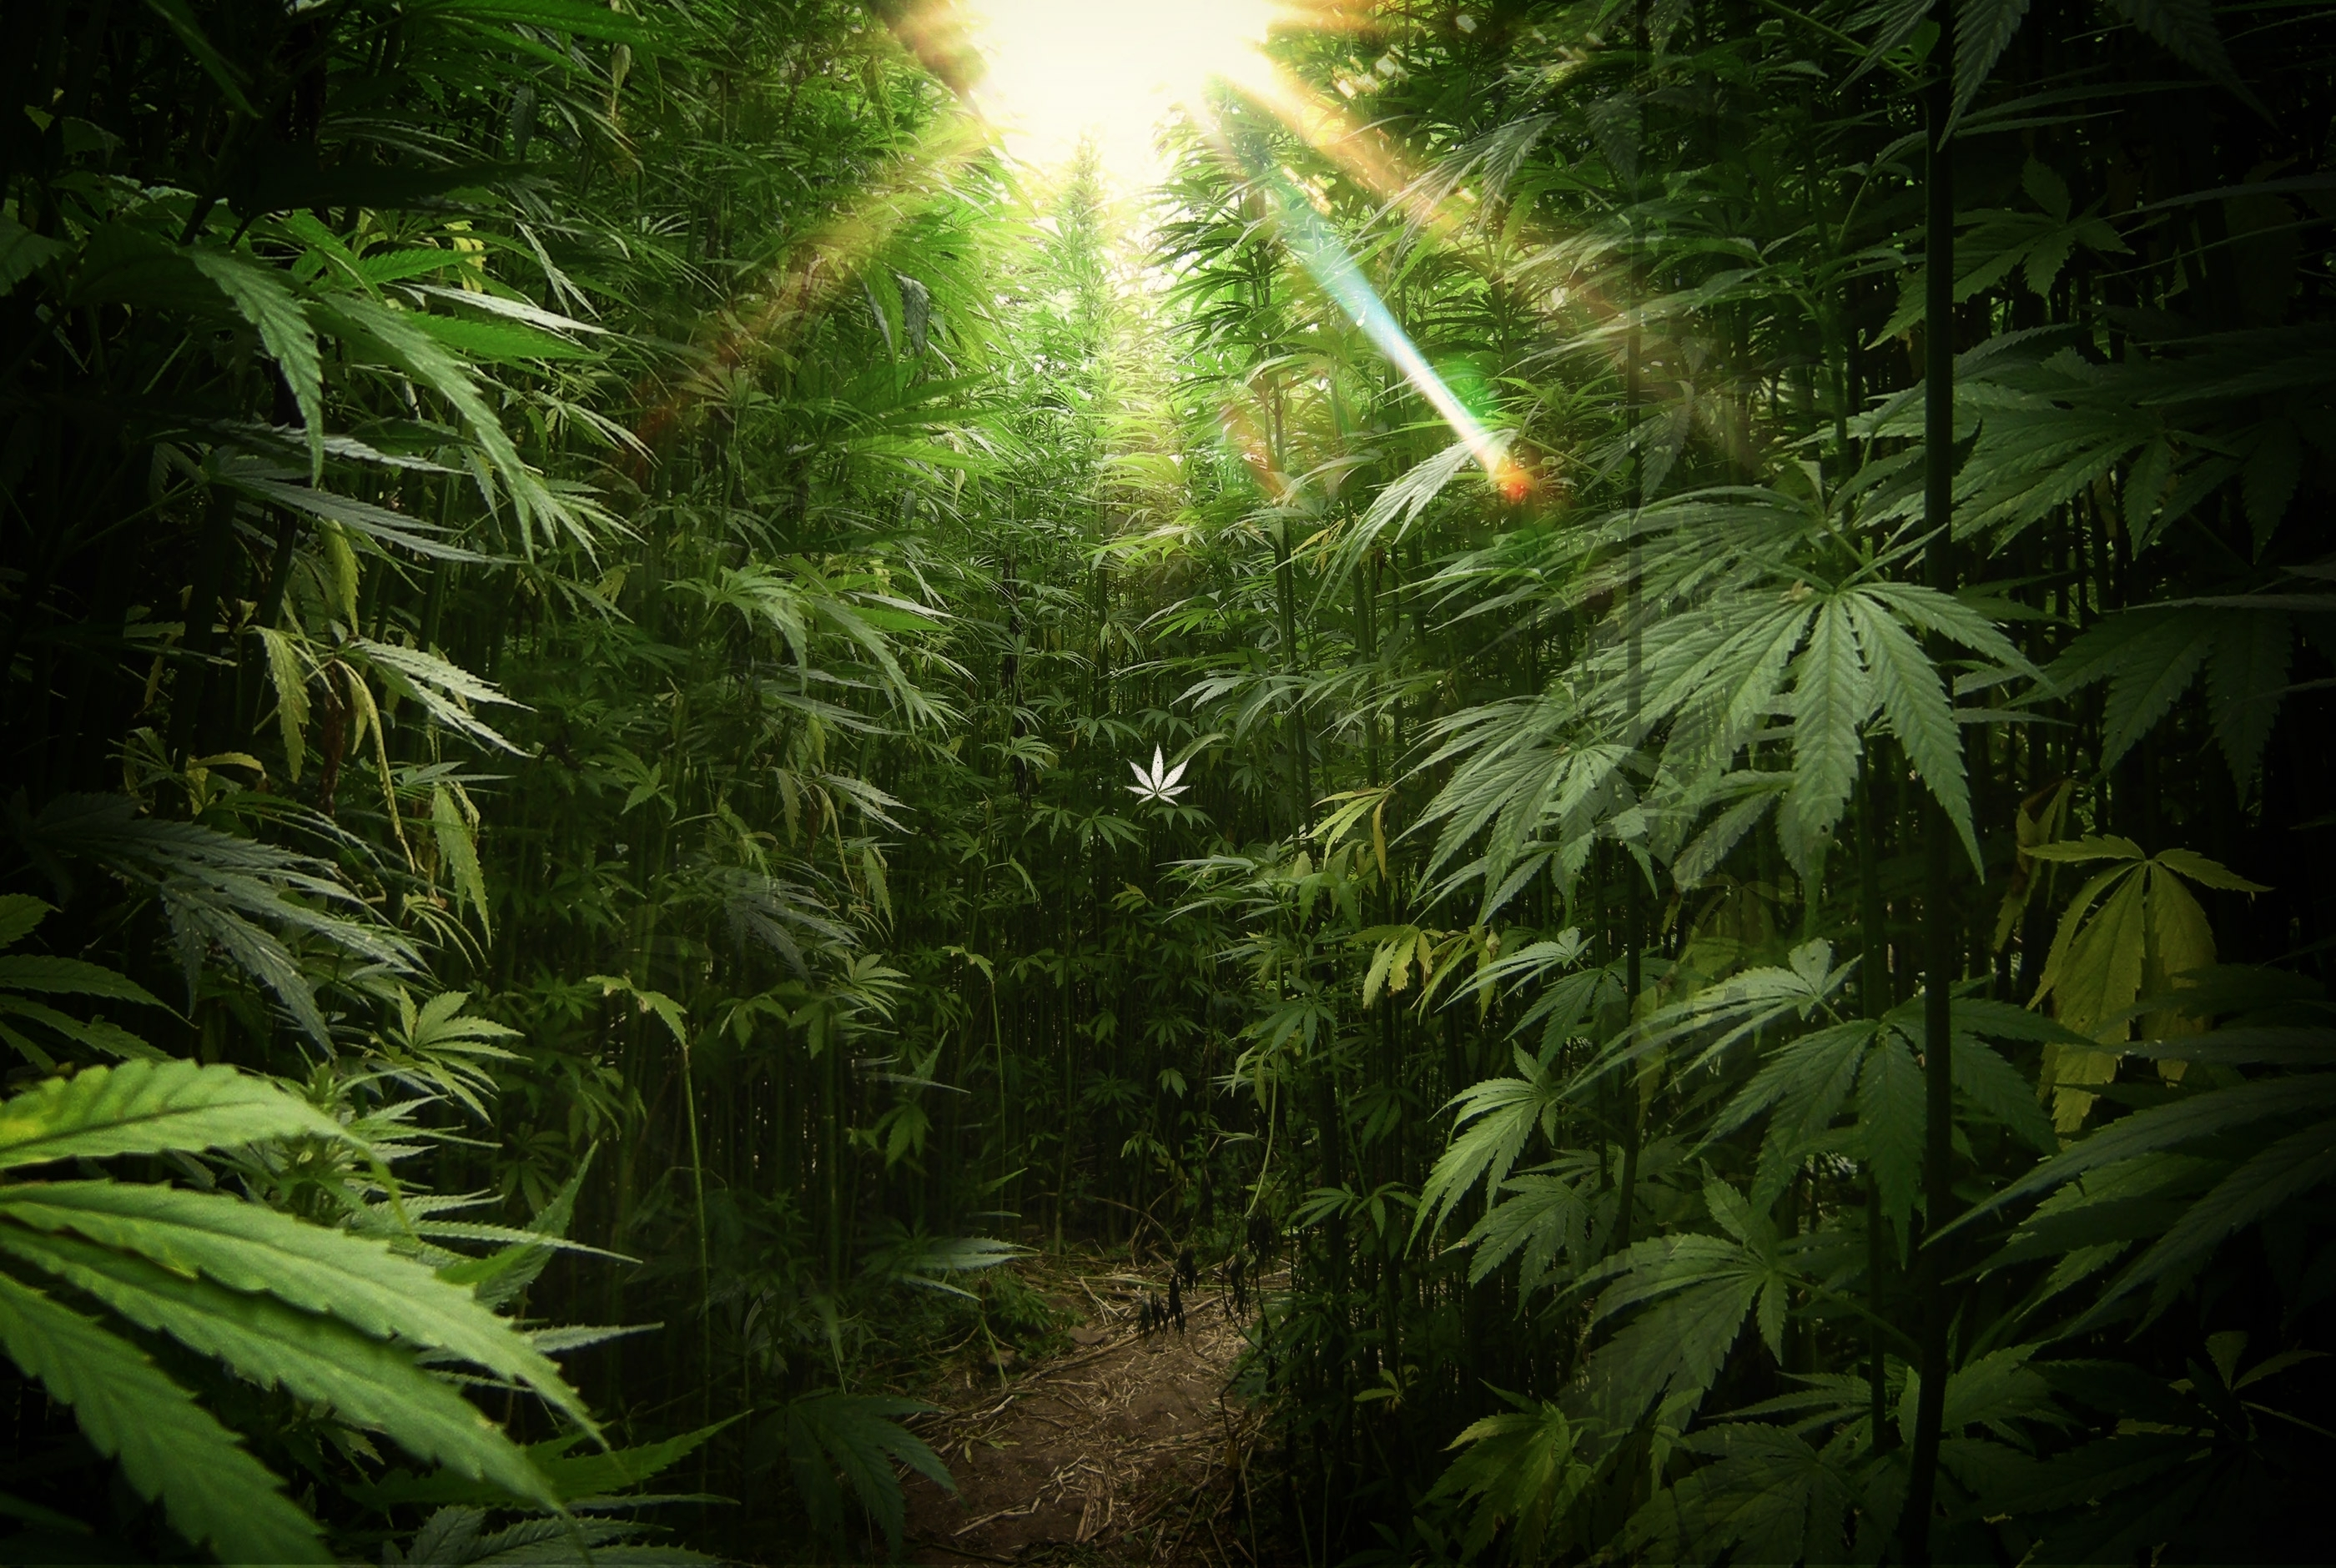 vg:33 - weed wallpapers, 100% quality hd awesome weed pics collection